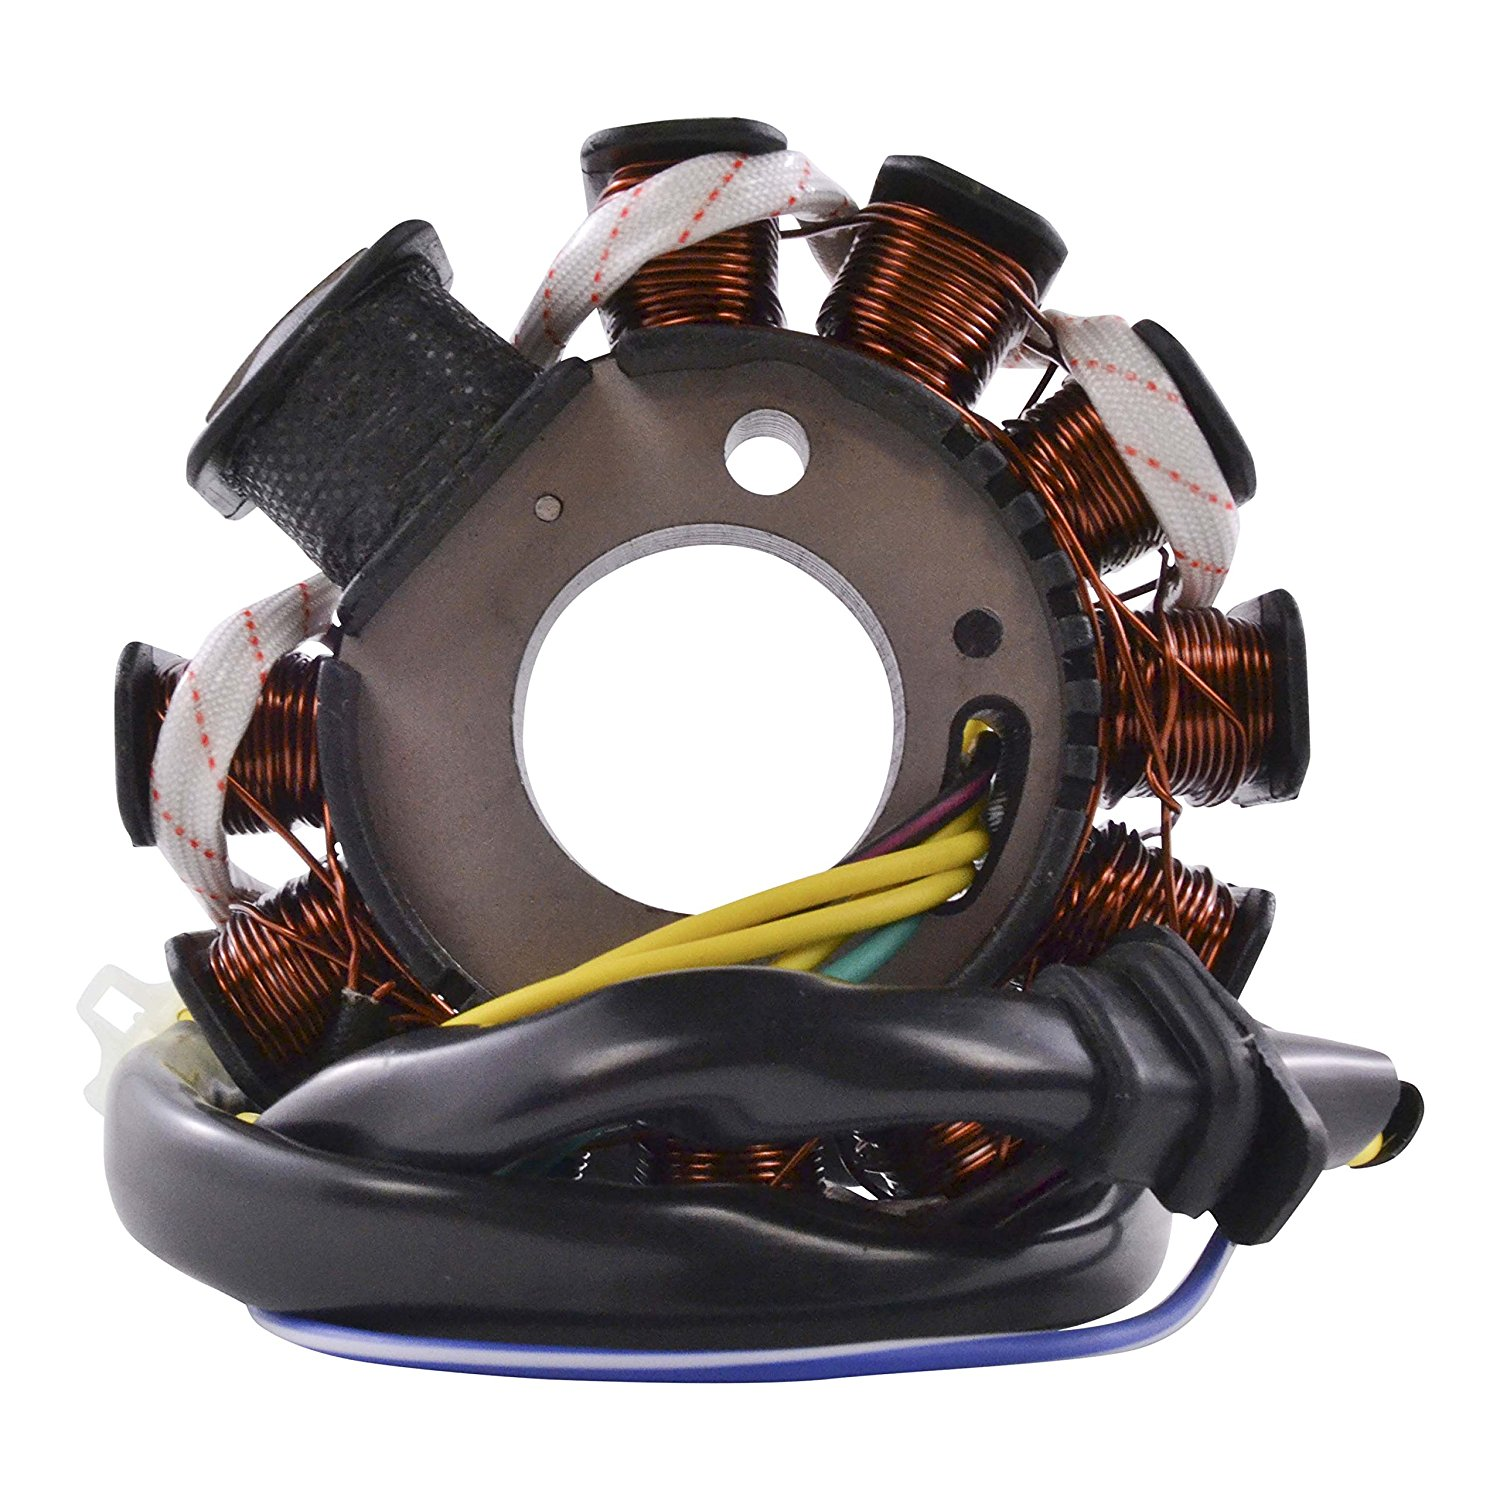 Get Quotations · Stator For Scooter Moped Go Kart GY6 125cc 150cc QMI152 QMI157 QMJ152 QMJ157 Engines